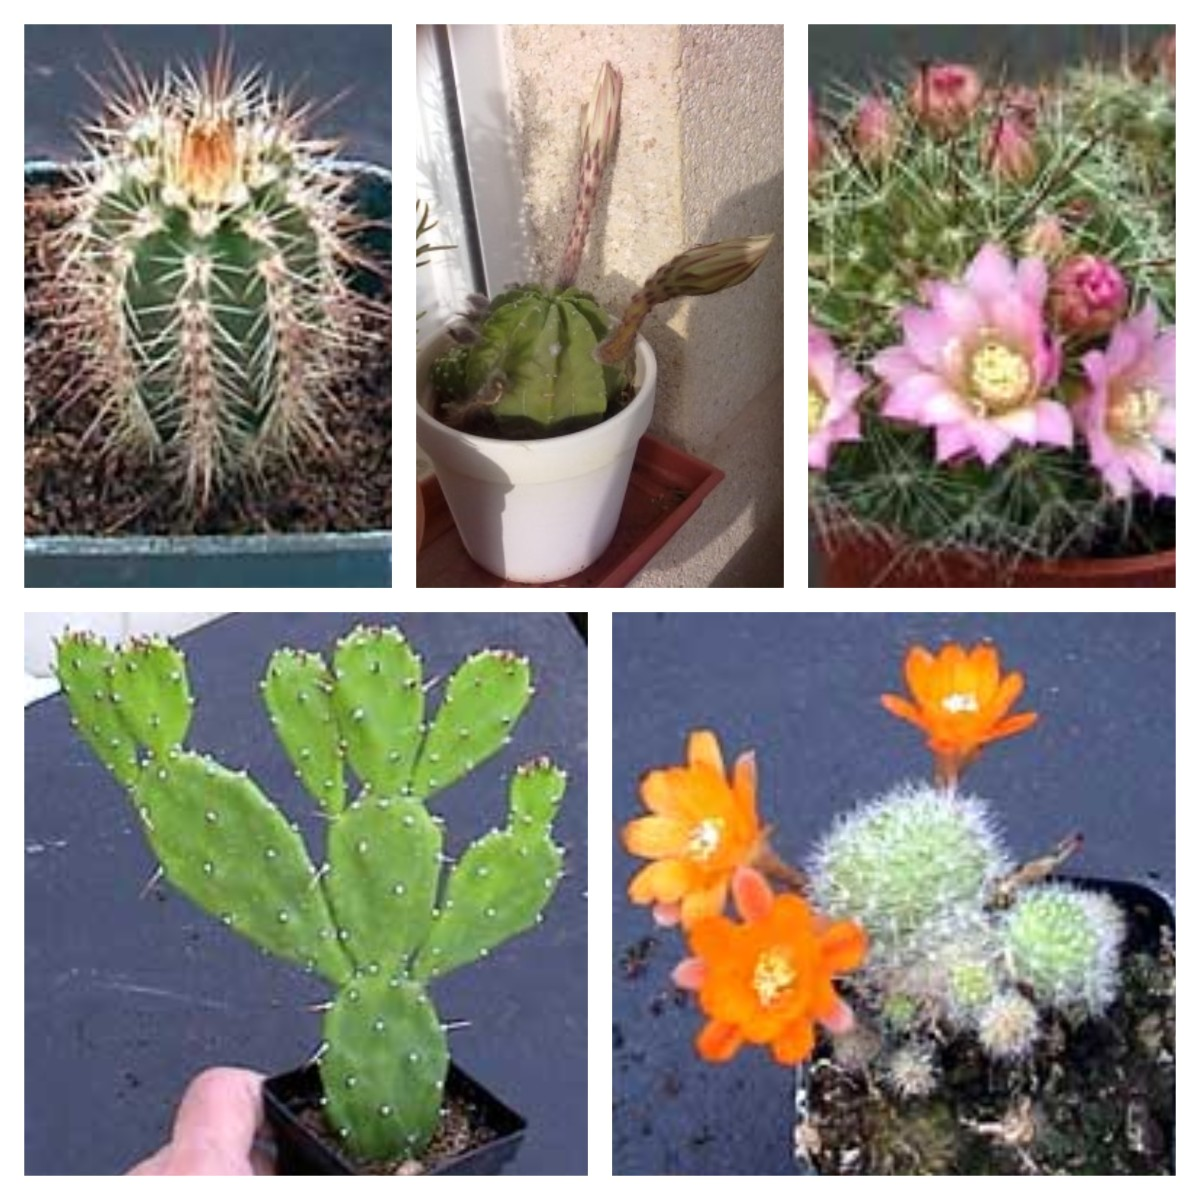 Top row from the left Echinerous, Gymnocalycium in bud, Mammillaria. Bottom row from the left Opuntia andd Rebutia